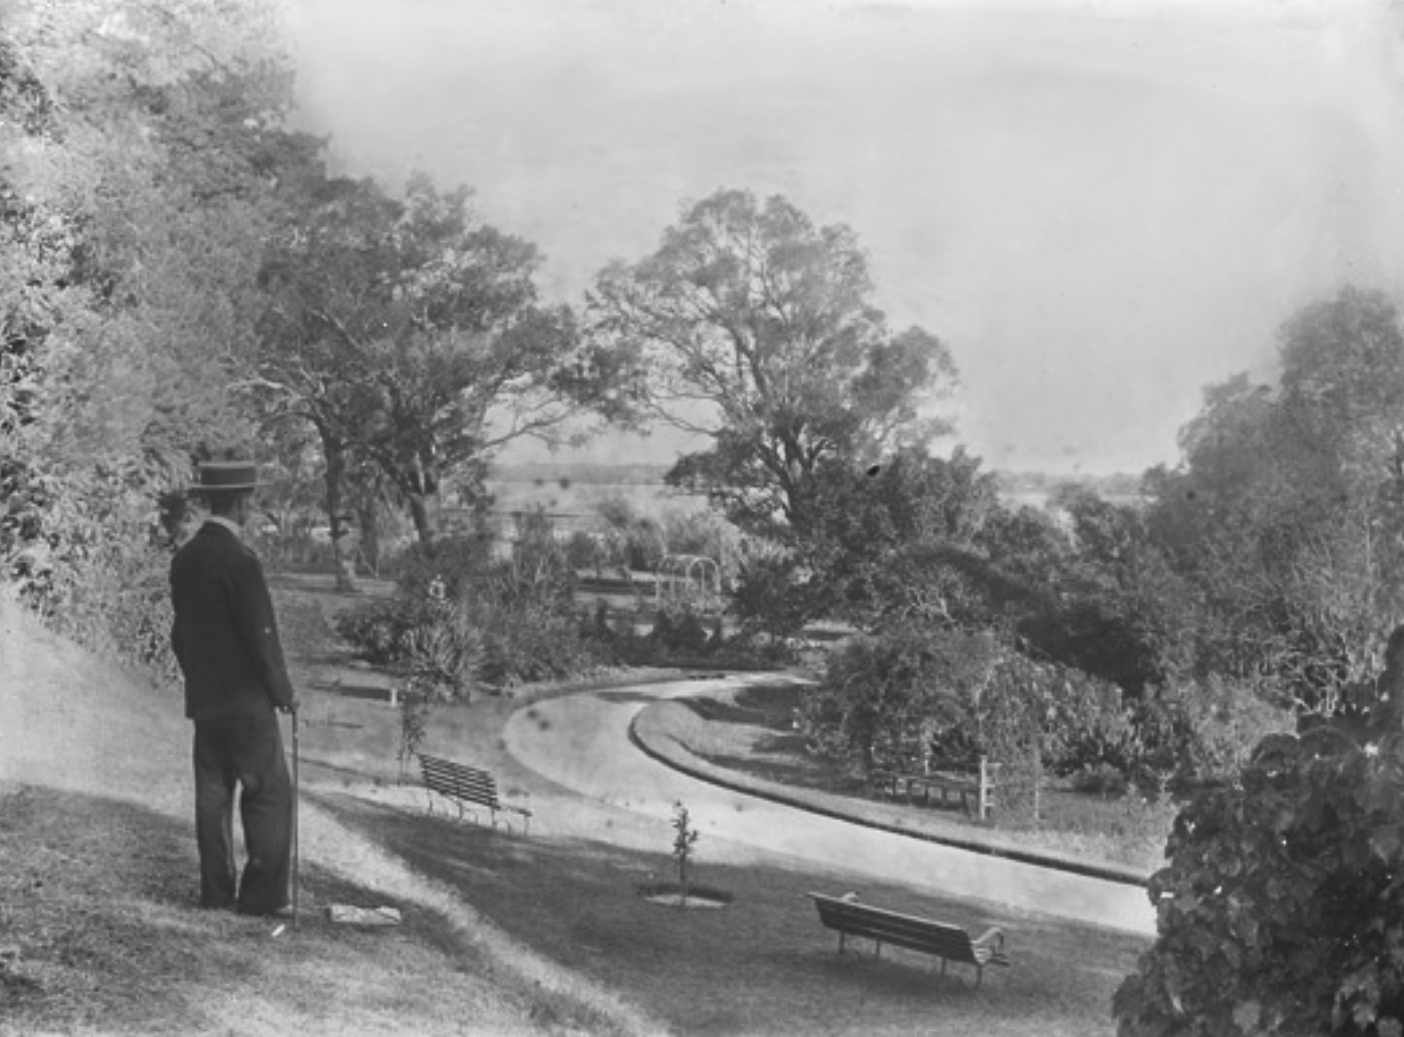 The road to the gate at the Claremont (now Crawley) end of Kings Park, early 1900s. Courtesy State Library of Western Australia, image 006187PD.